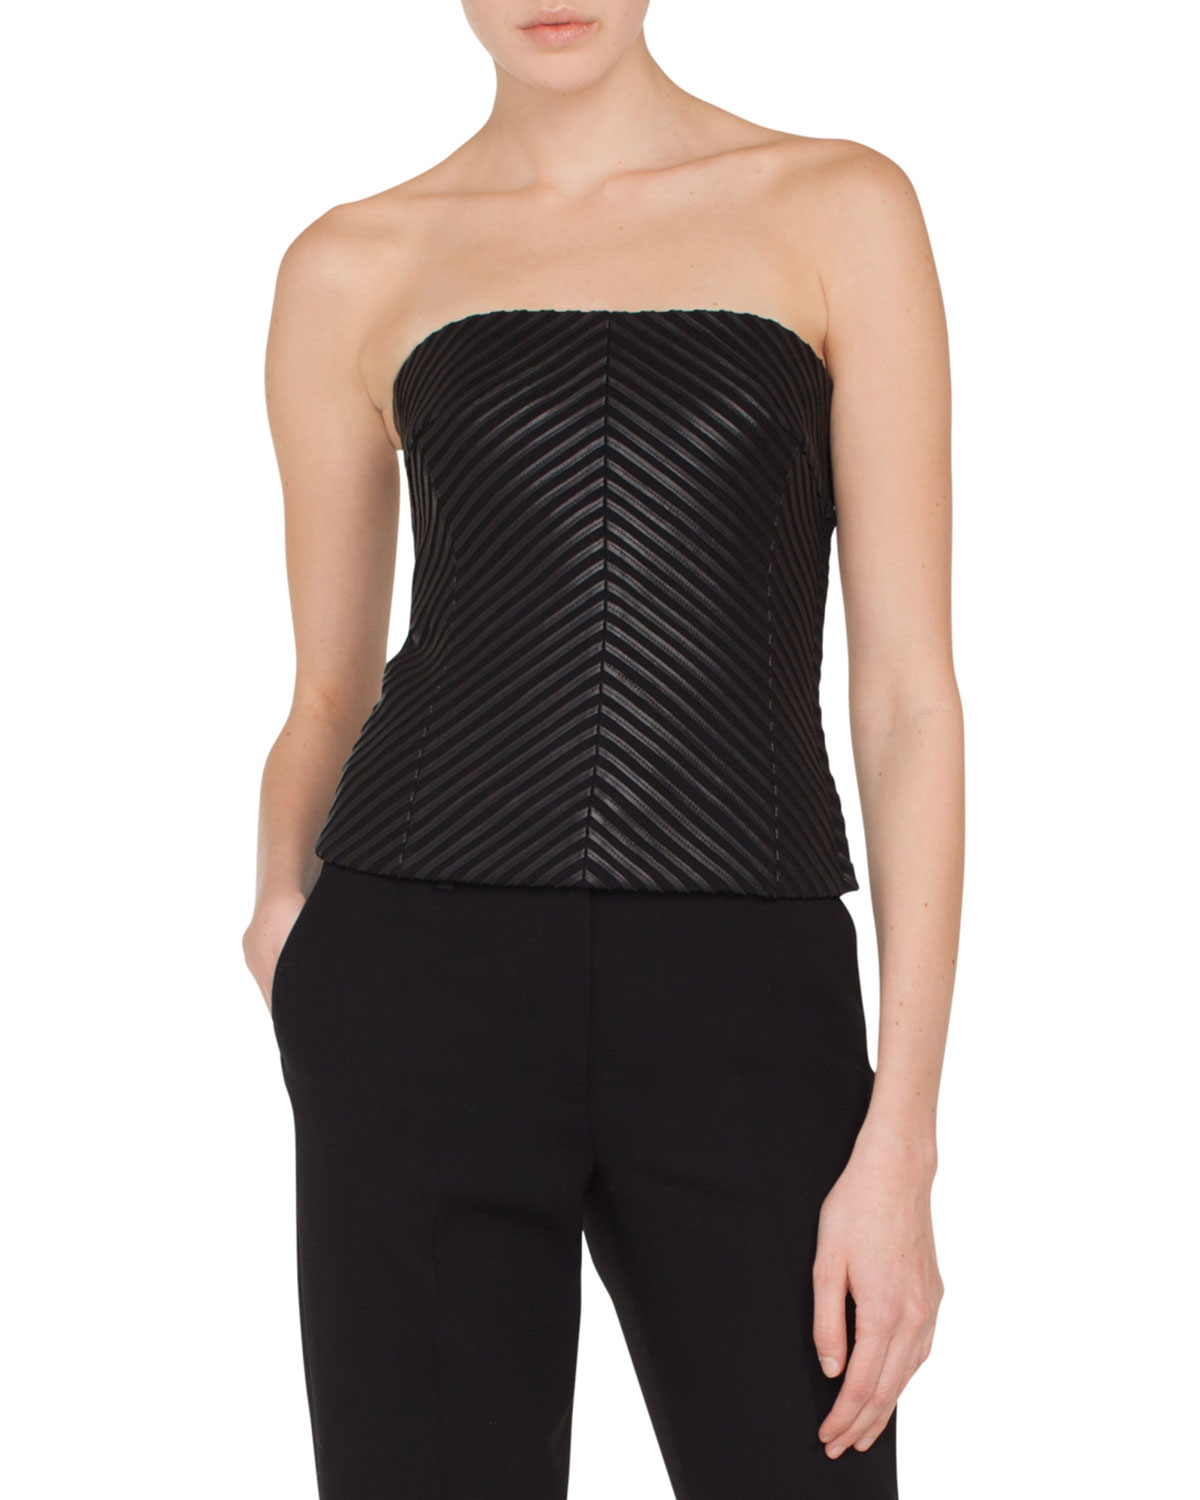 540d80481f9 Akris Strapless Herringbone Leather Bustier Top